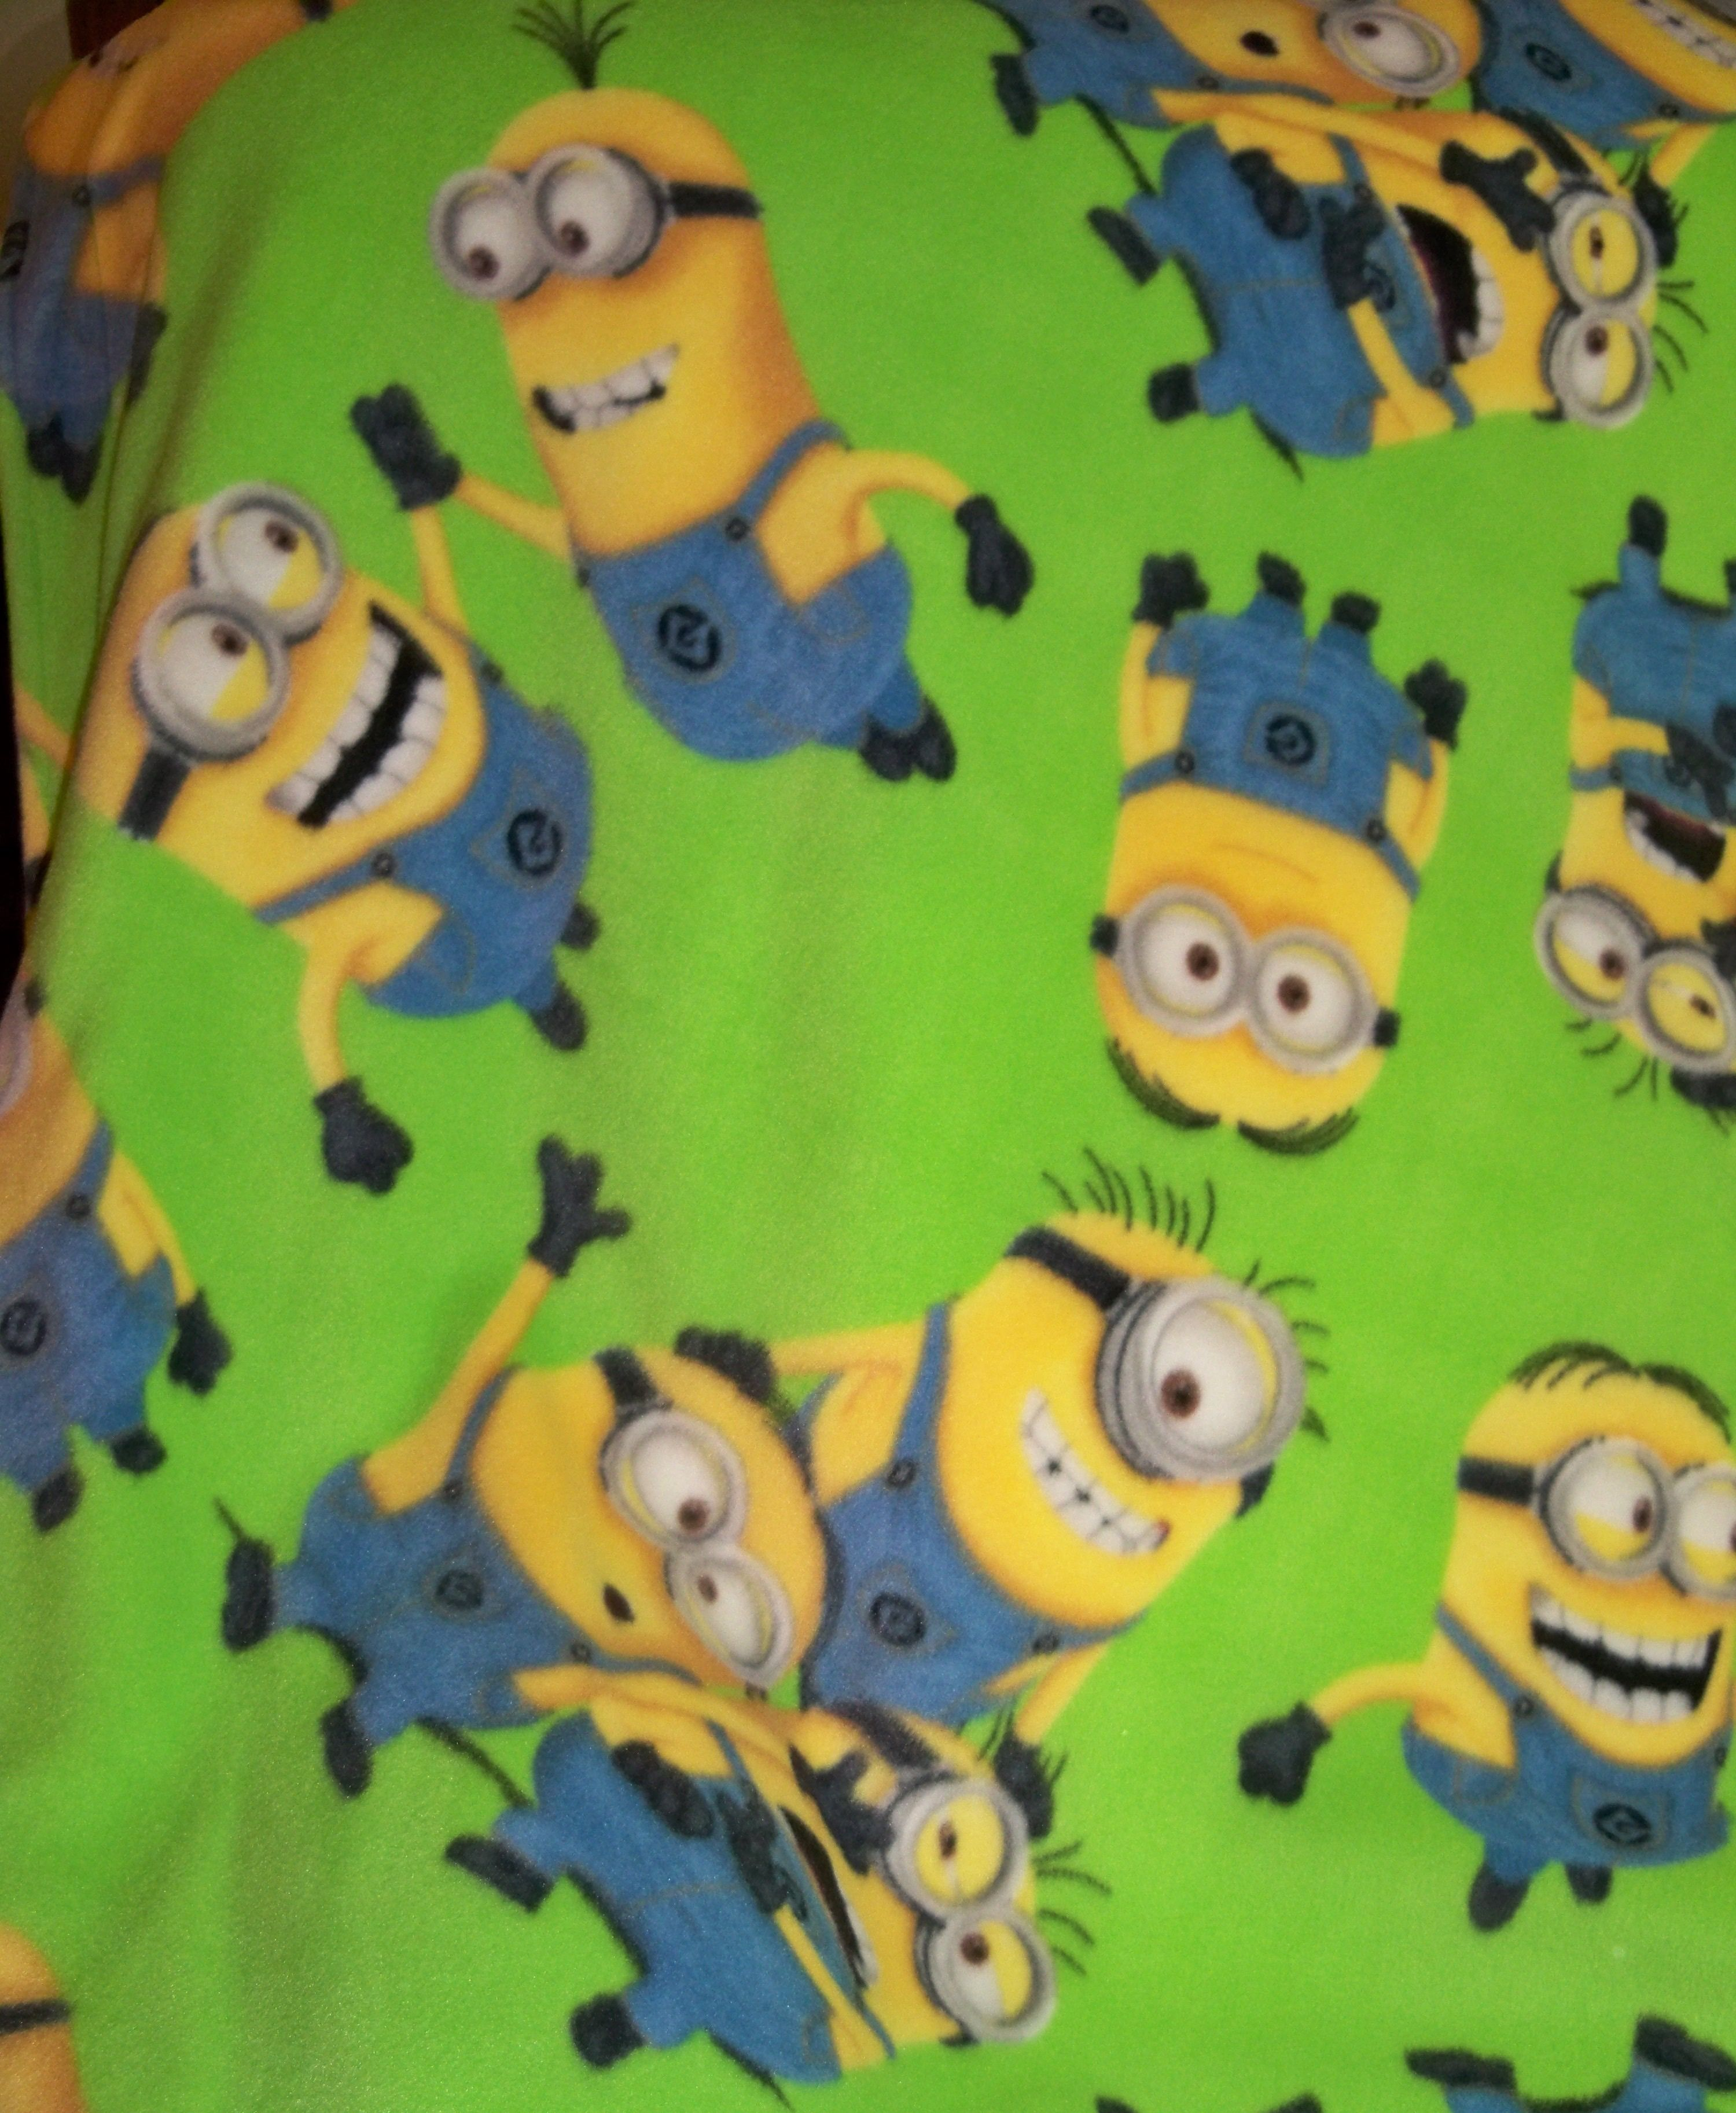 Doublesided minions fleece blanket with lemon yellow on the other